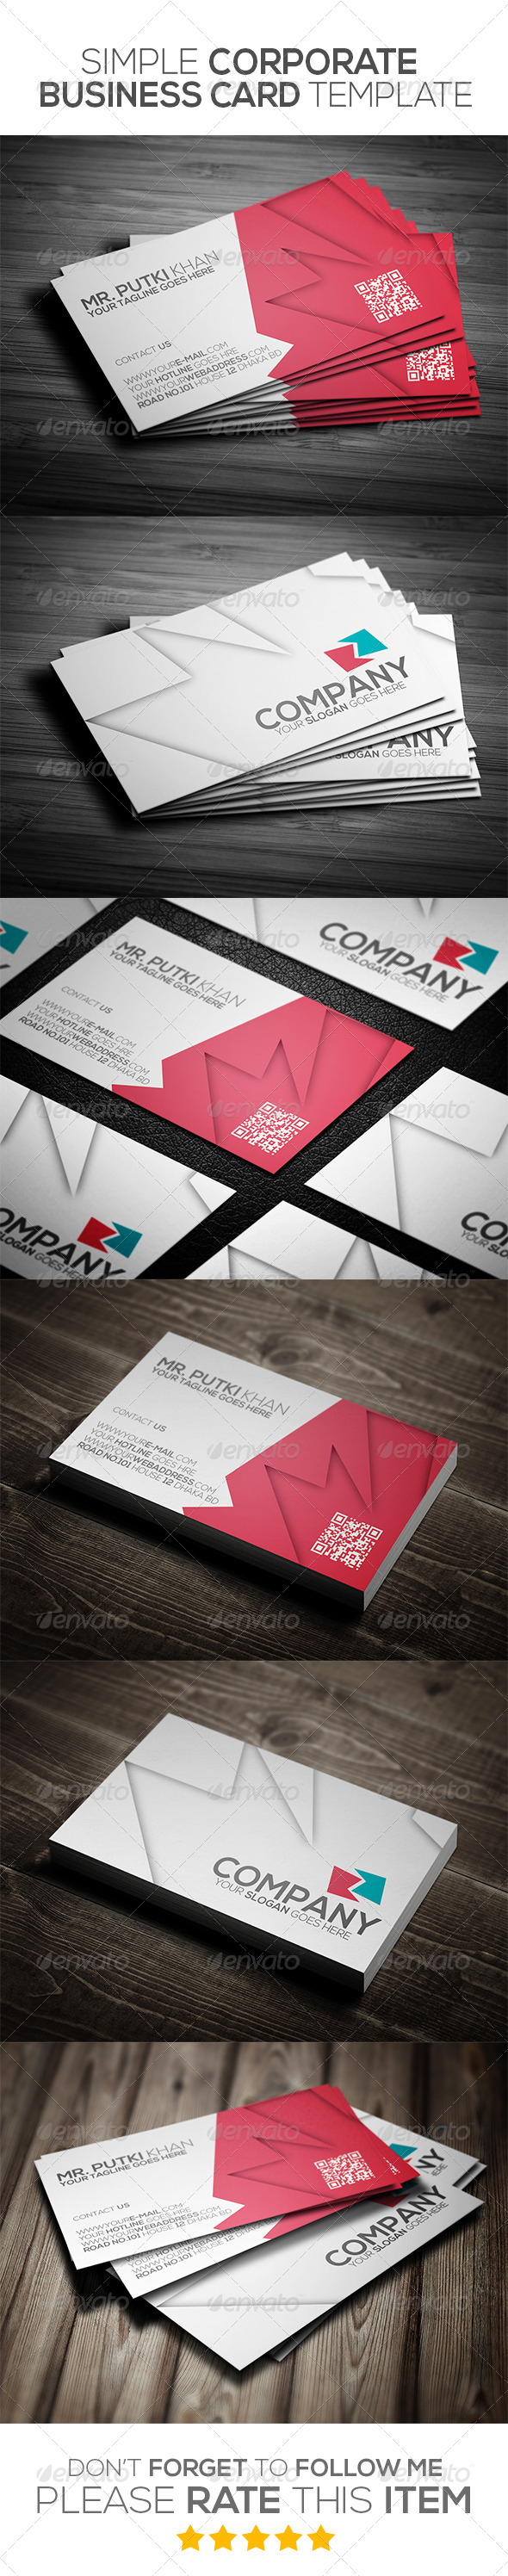 GraphicRiver Simple Corporate Business Card Template 6976998